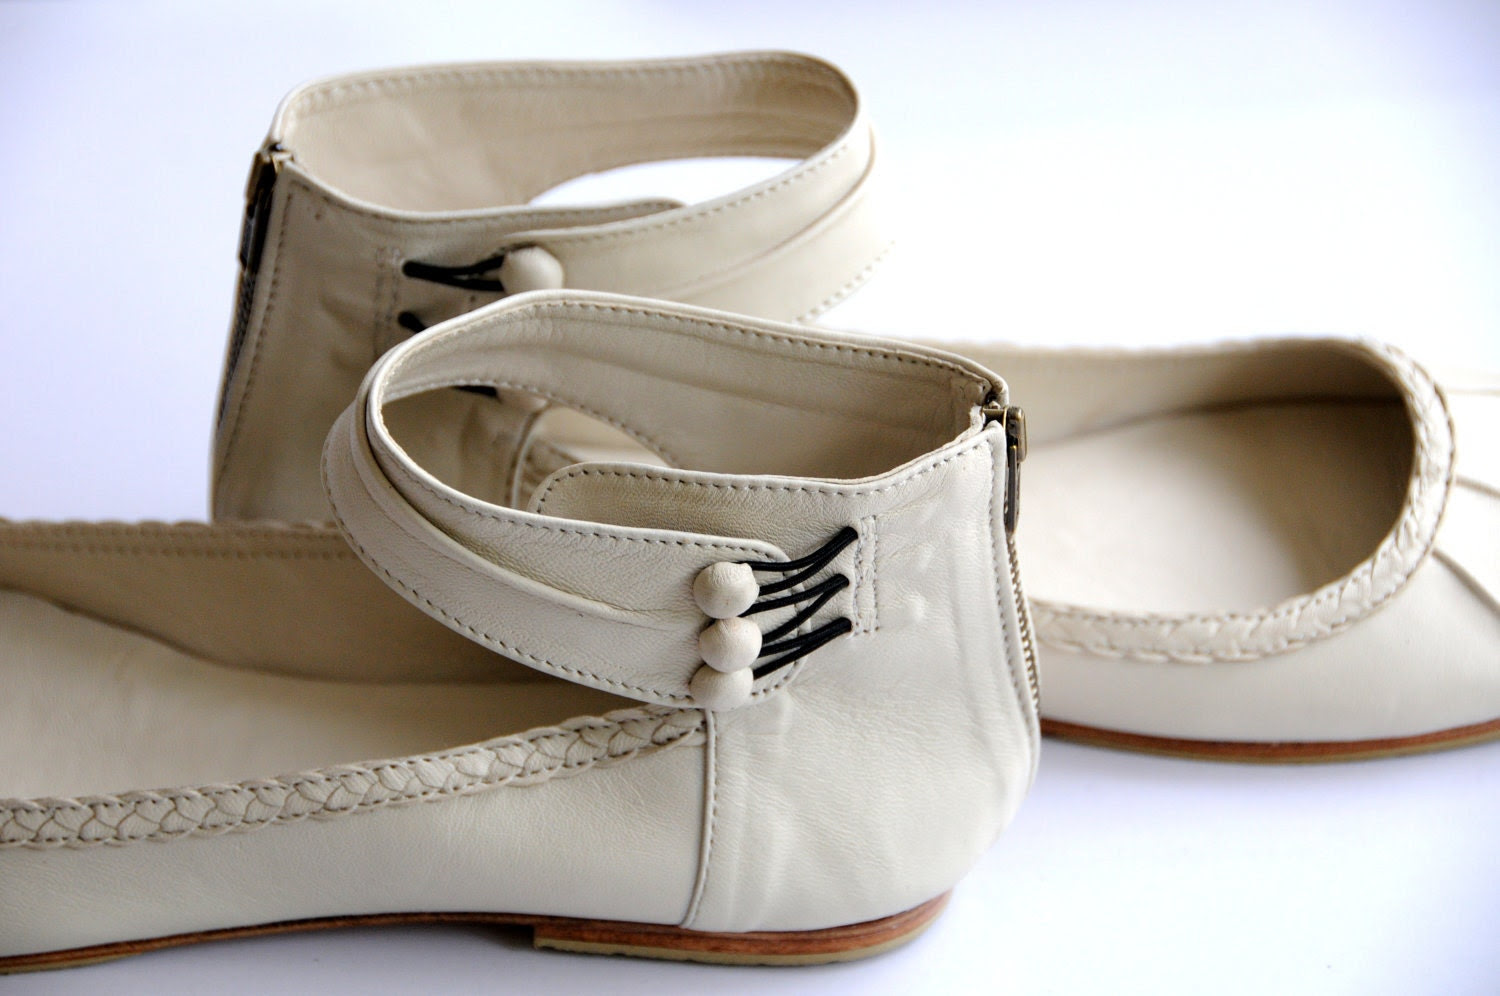 MUSE. Ballet flats / Leather shoes / sizes US 4-13 . Available in different leather colors. - BaliELF